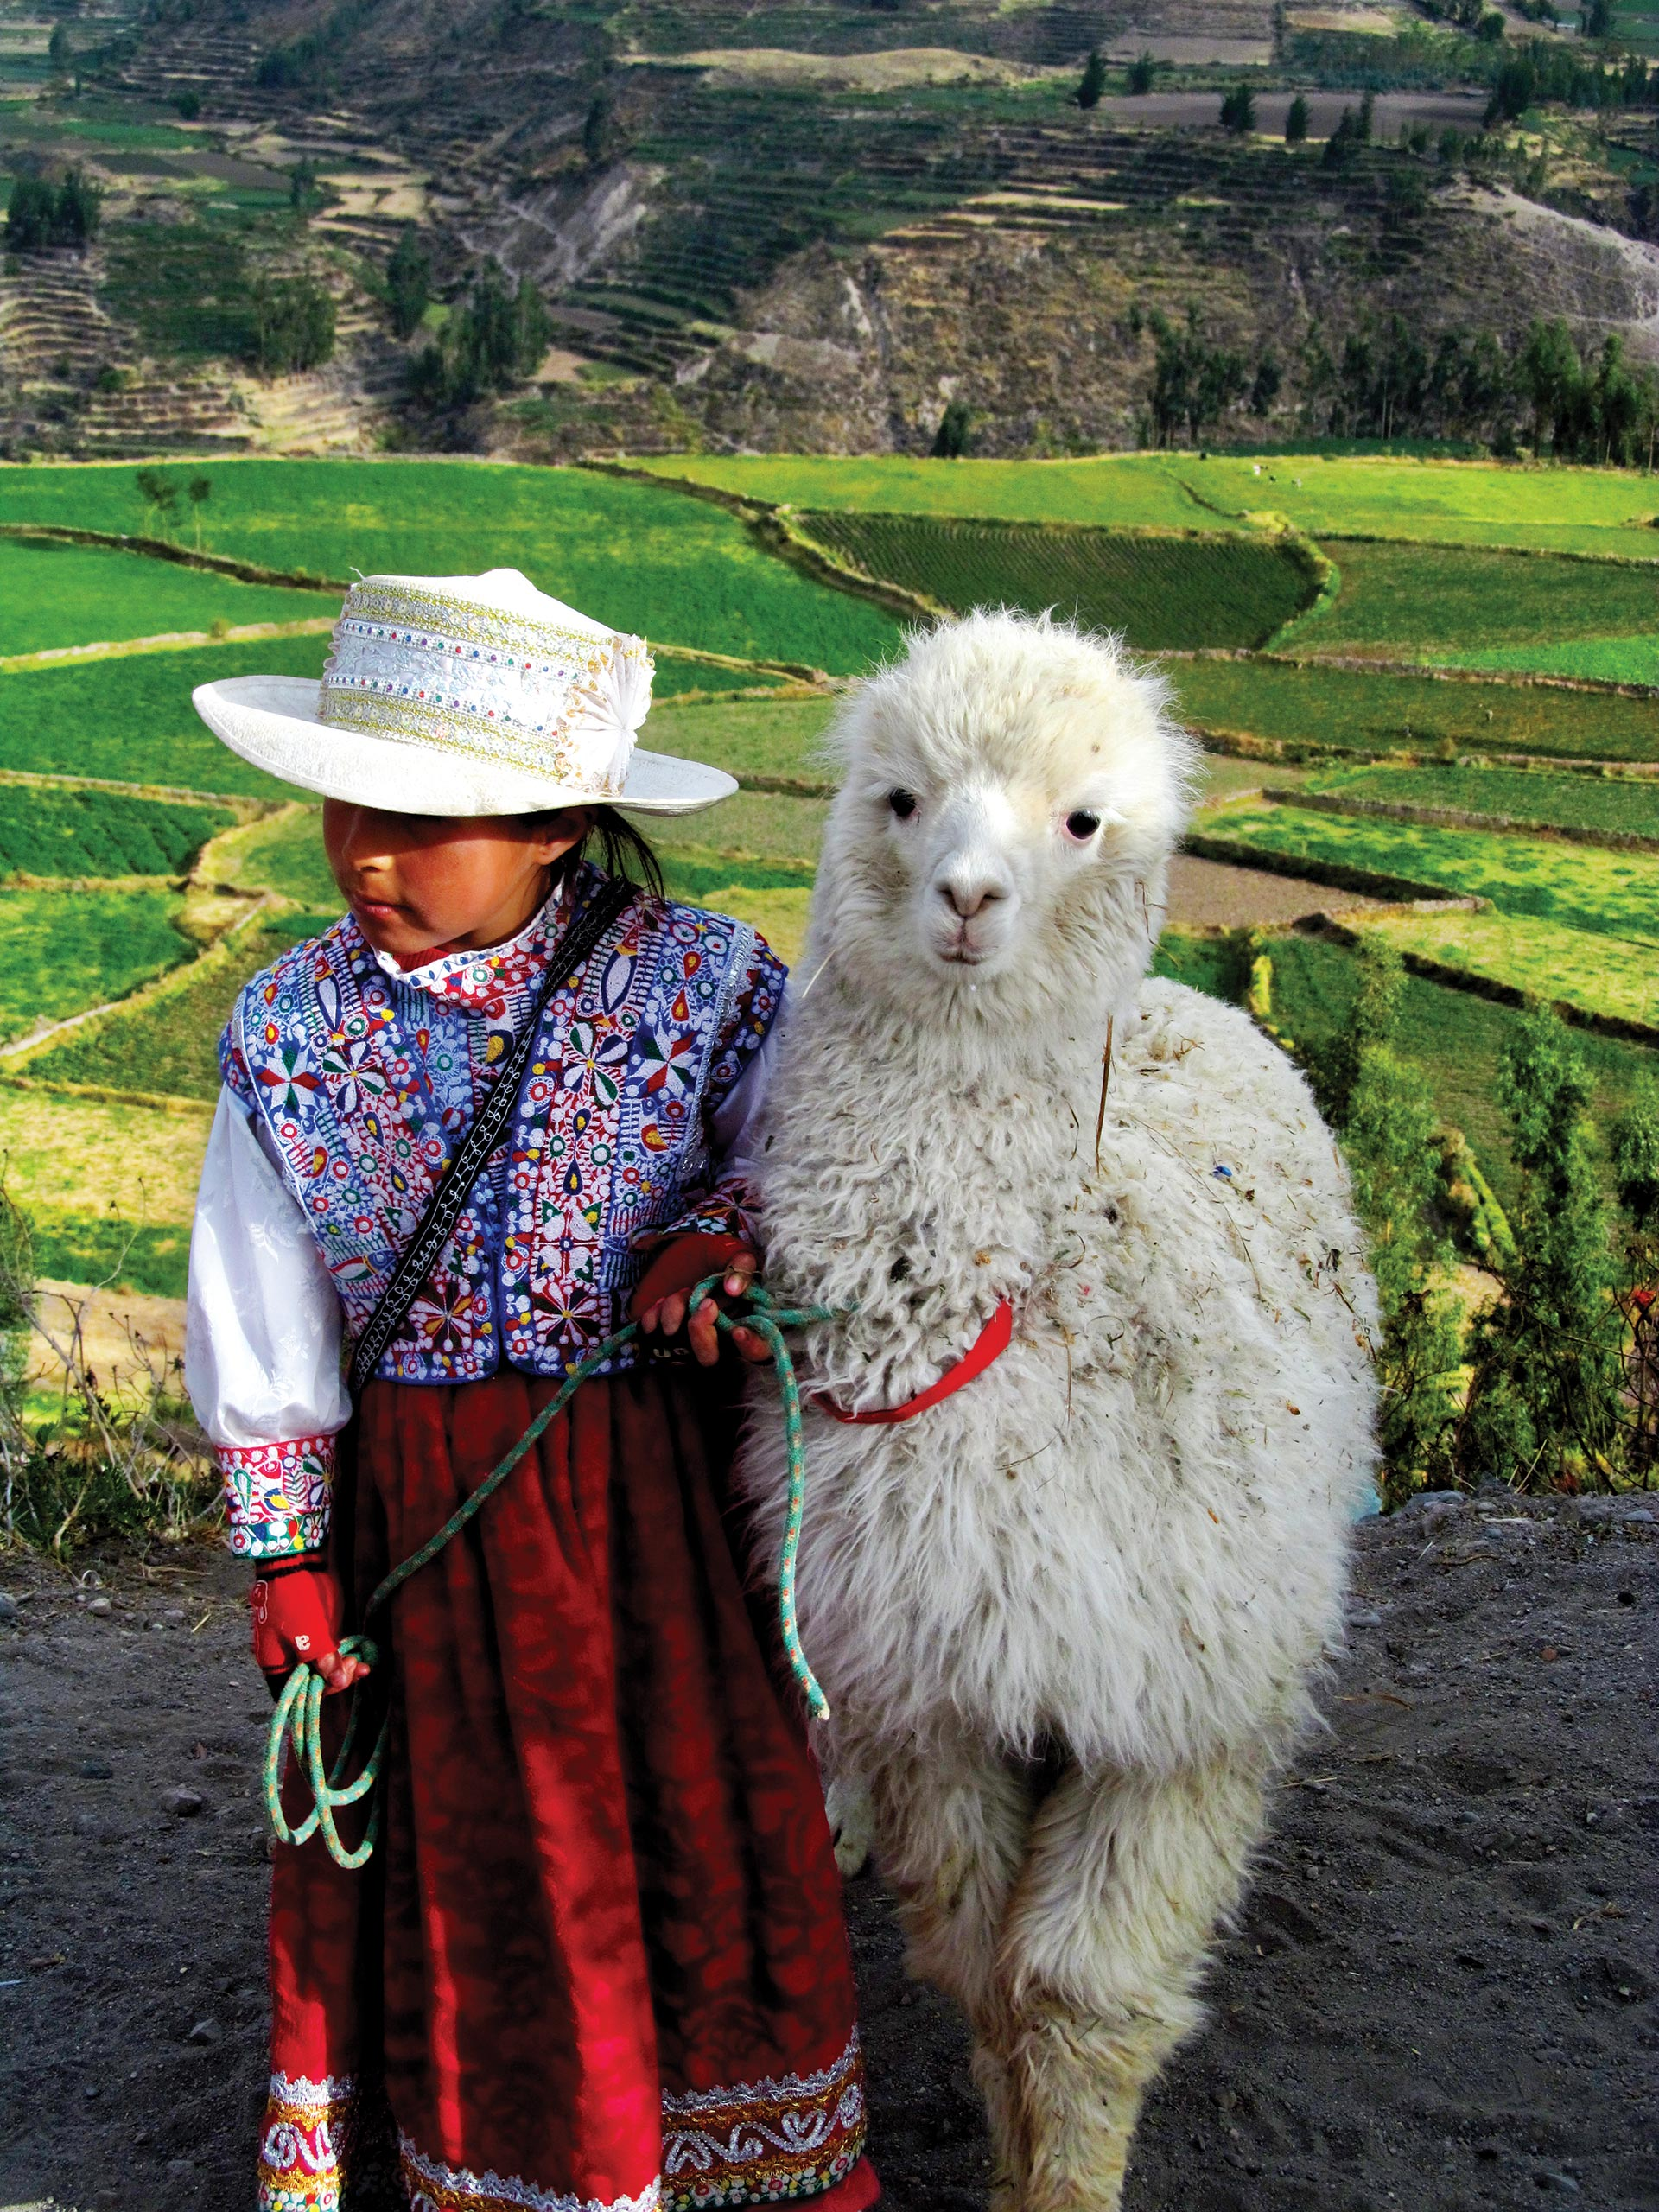 http://infromtheoutpost.com Many Andean families own llamas